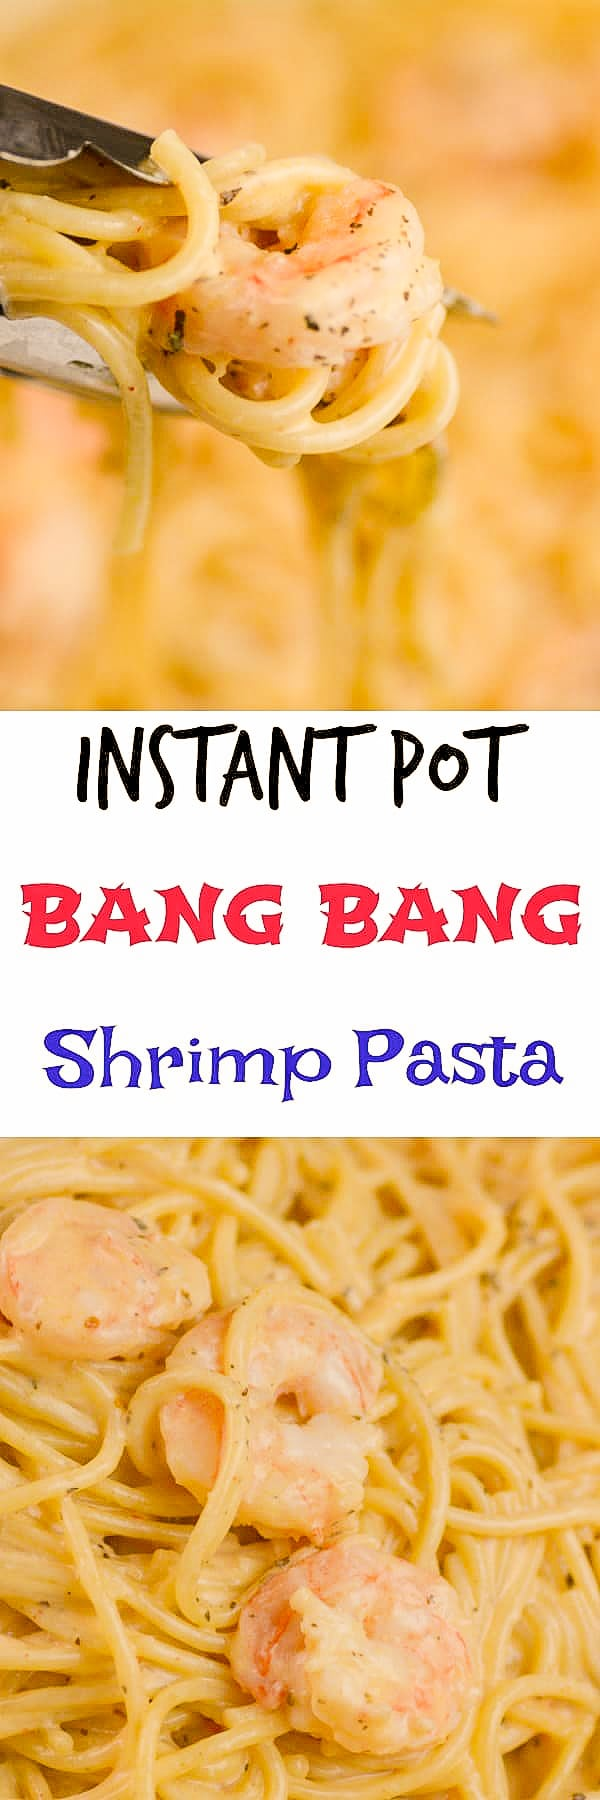 Instant Pot Bang Bang Shrimp